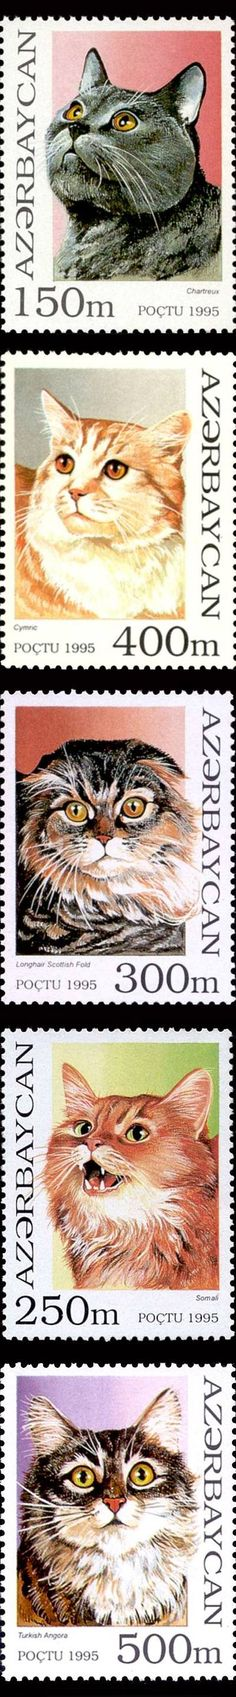 Azerbaijan cat stamp series 1995